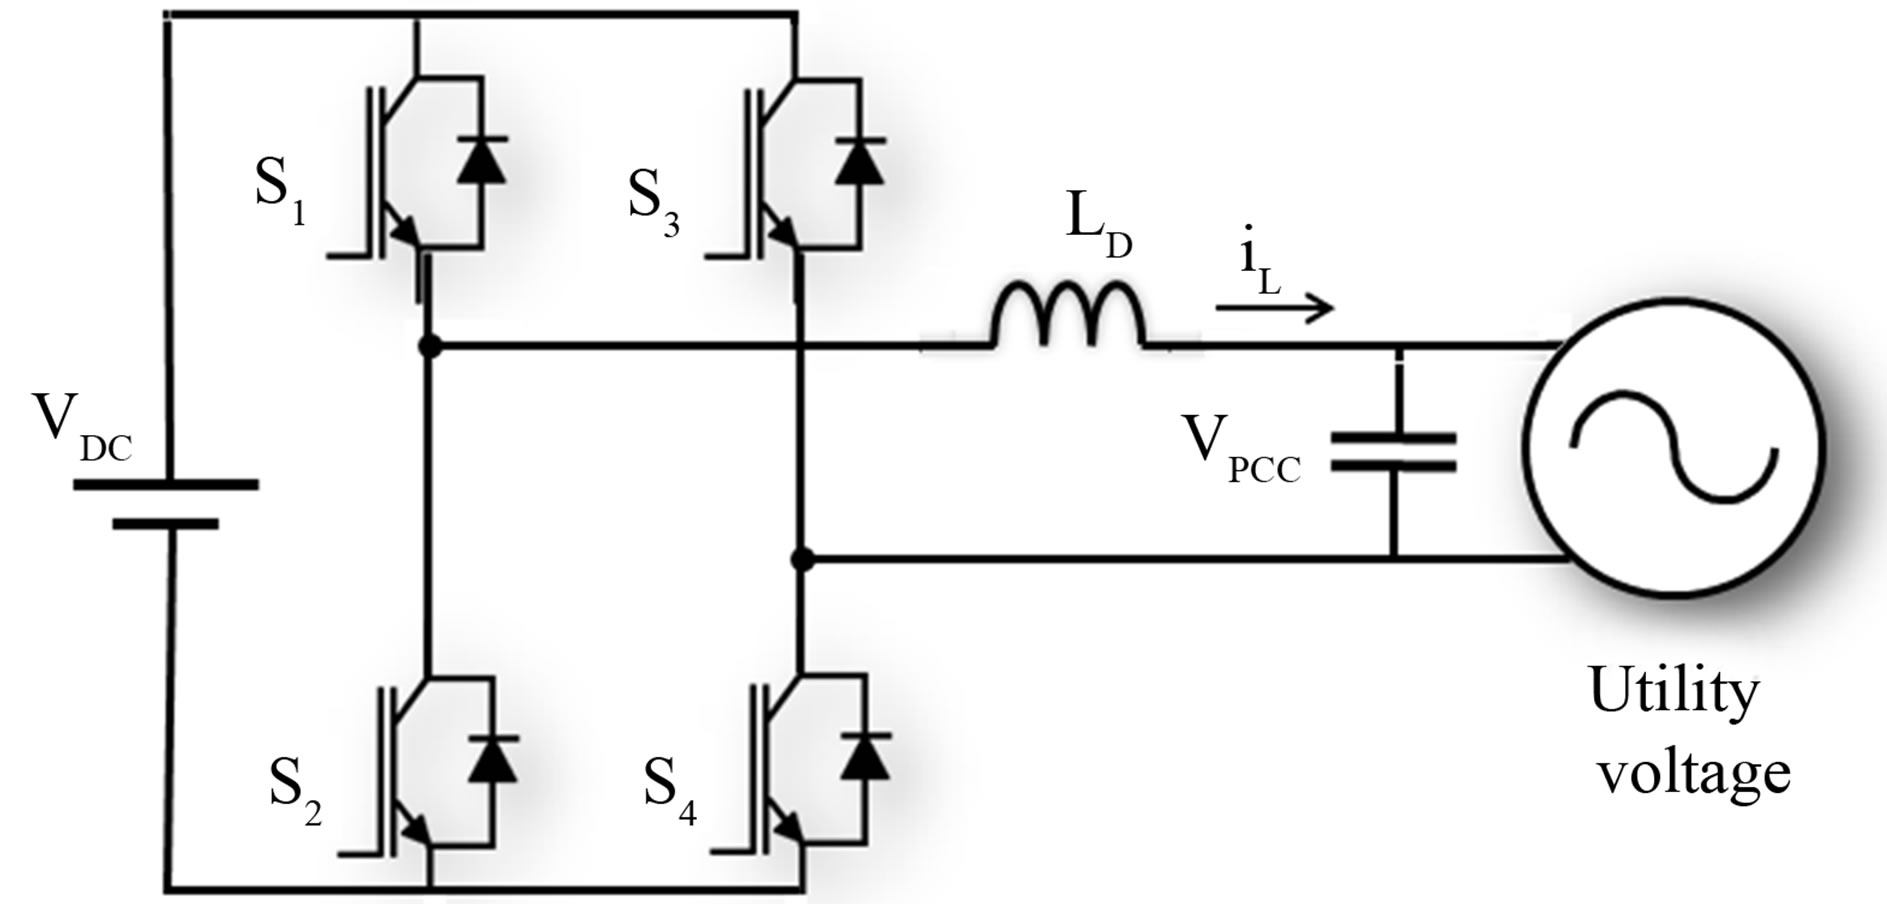 Fpga Implementation Of Predictive Hysteresis Current Control For Single Starter Circuit Diagram Grid Connected Vsi